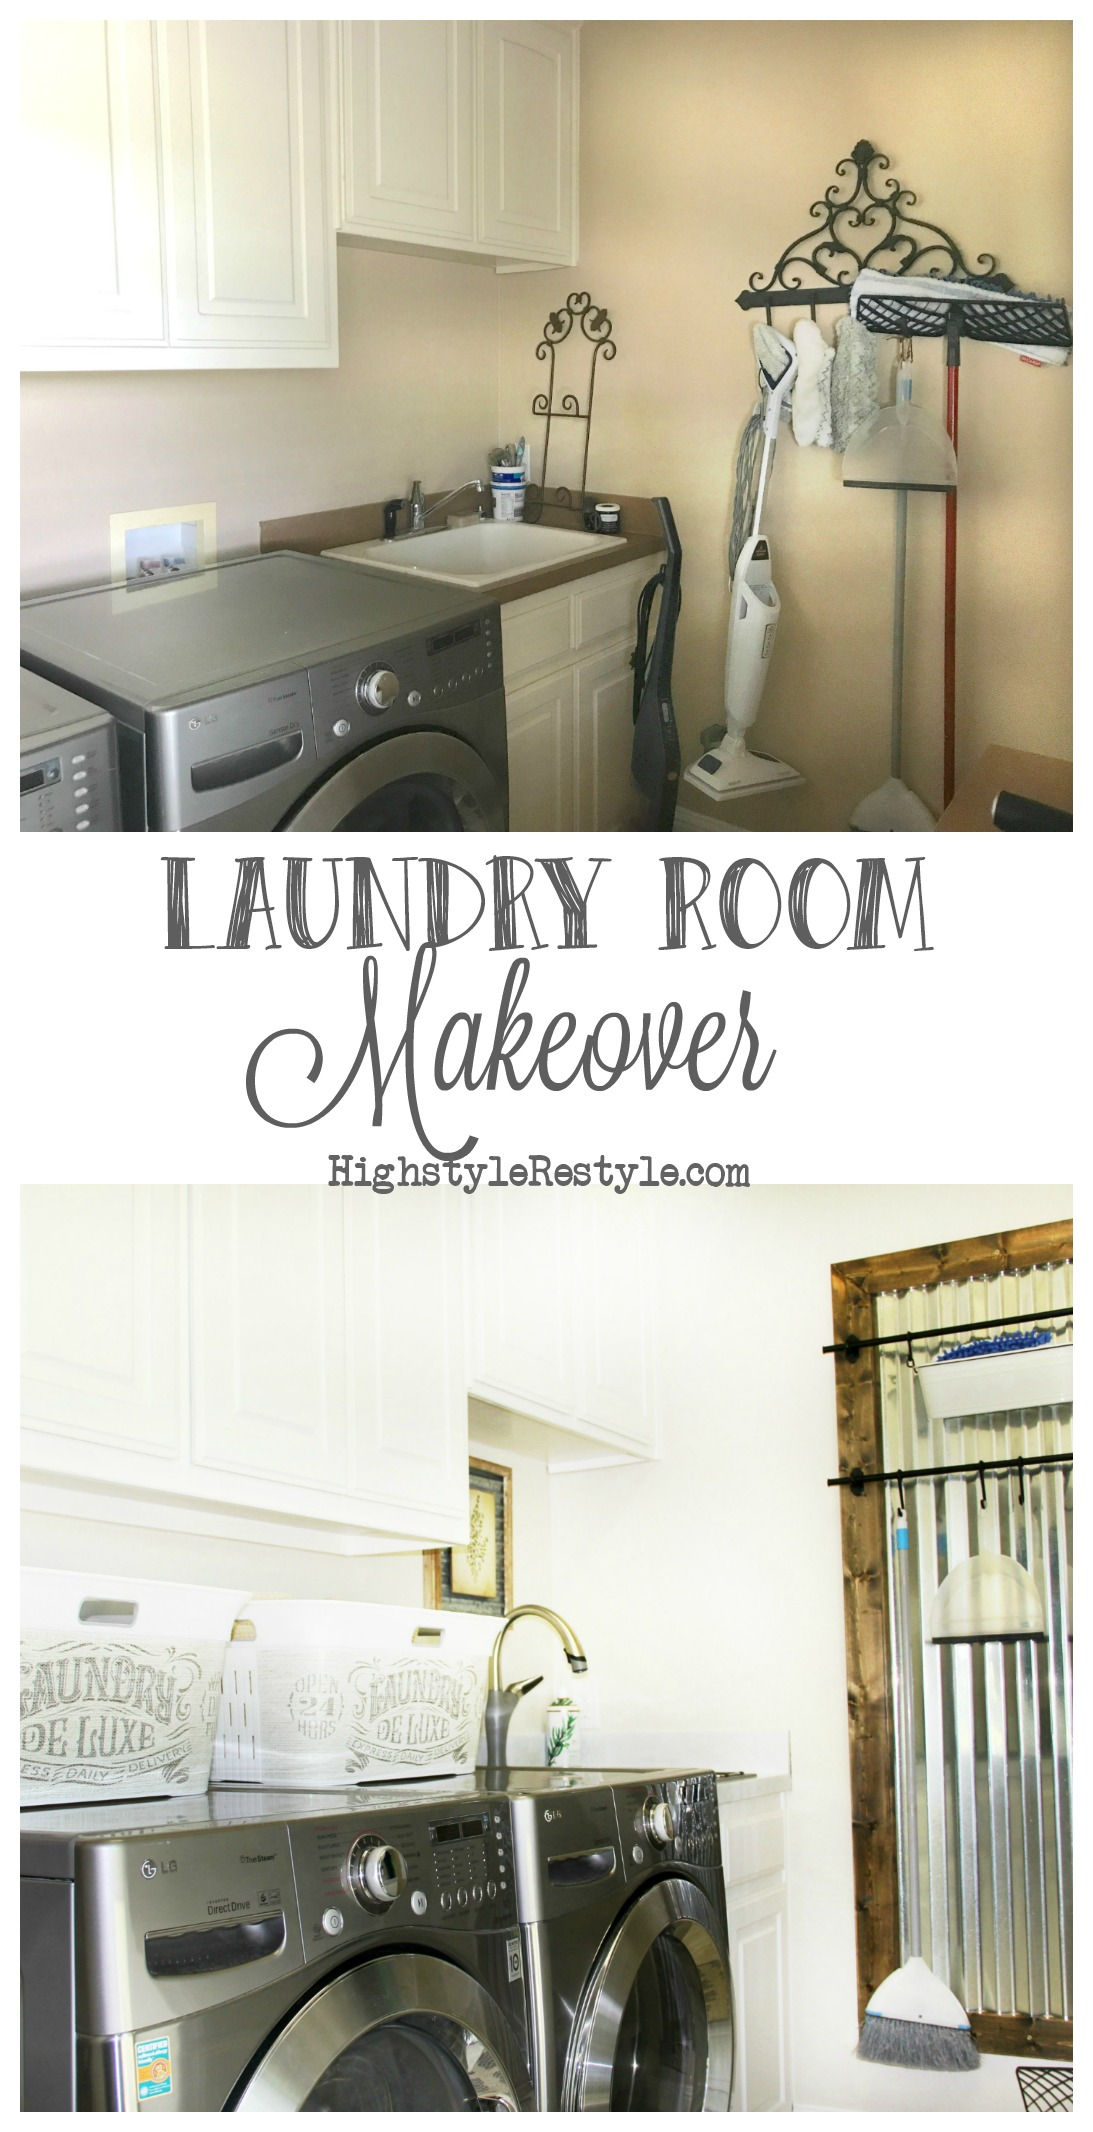 Laundry room makeover_before and after.jpg